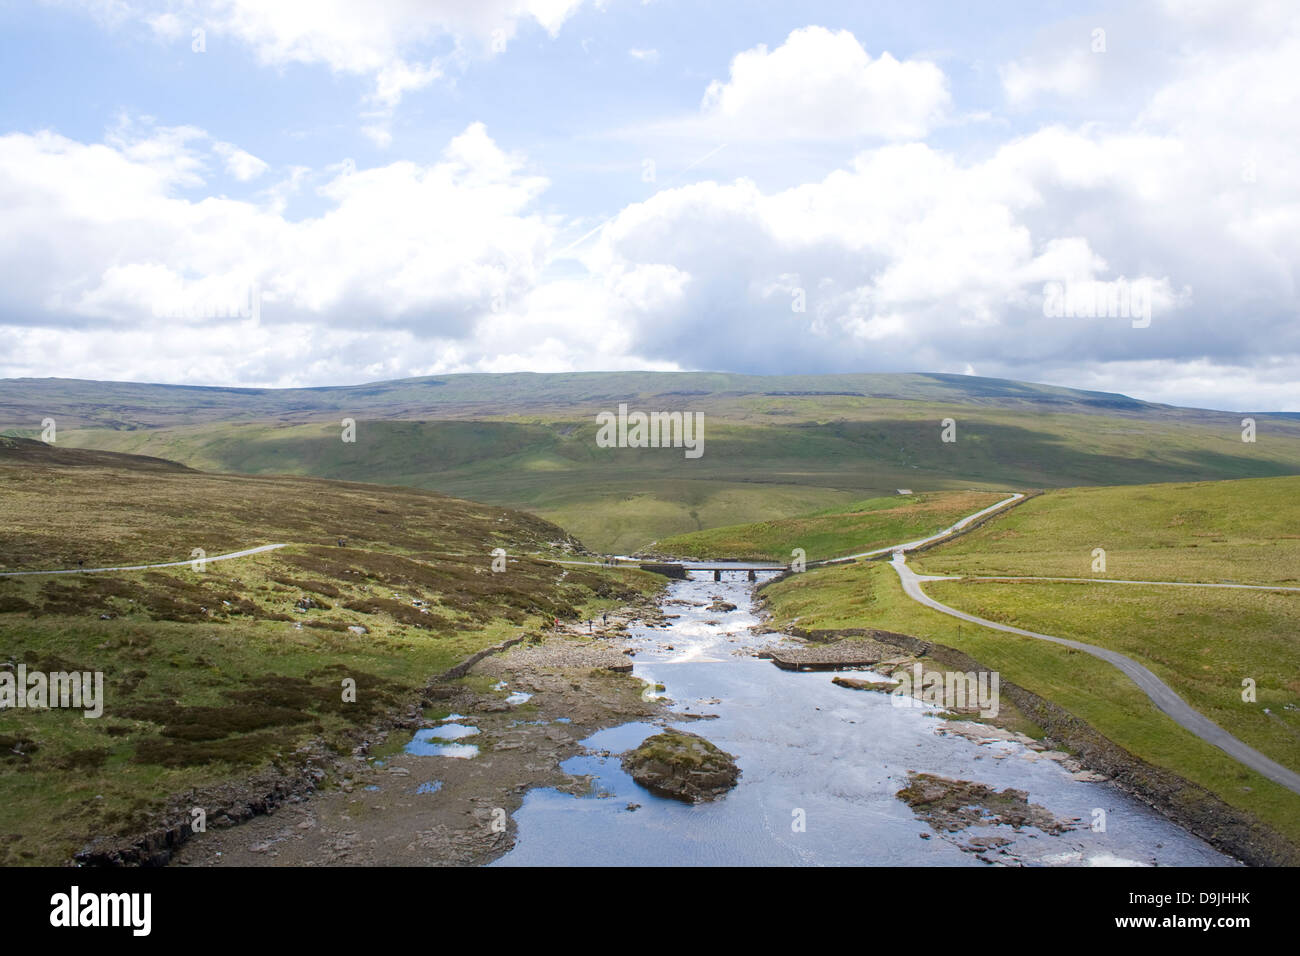 View over the River Tees in the North Pennines - Stock Image